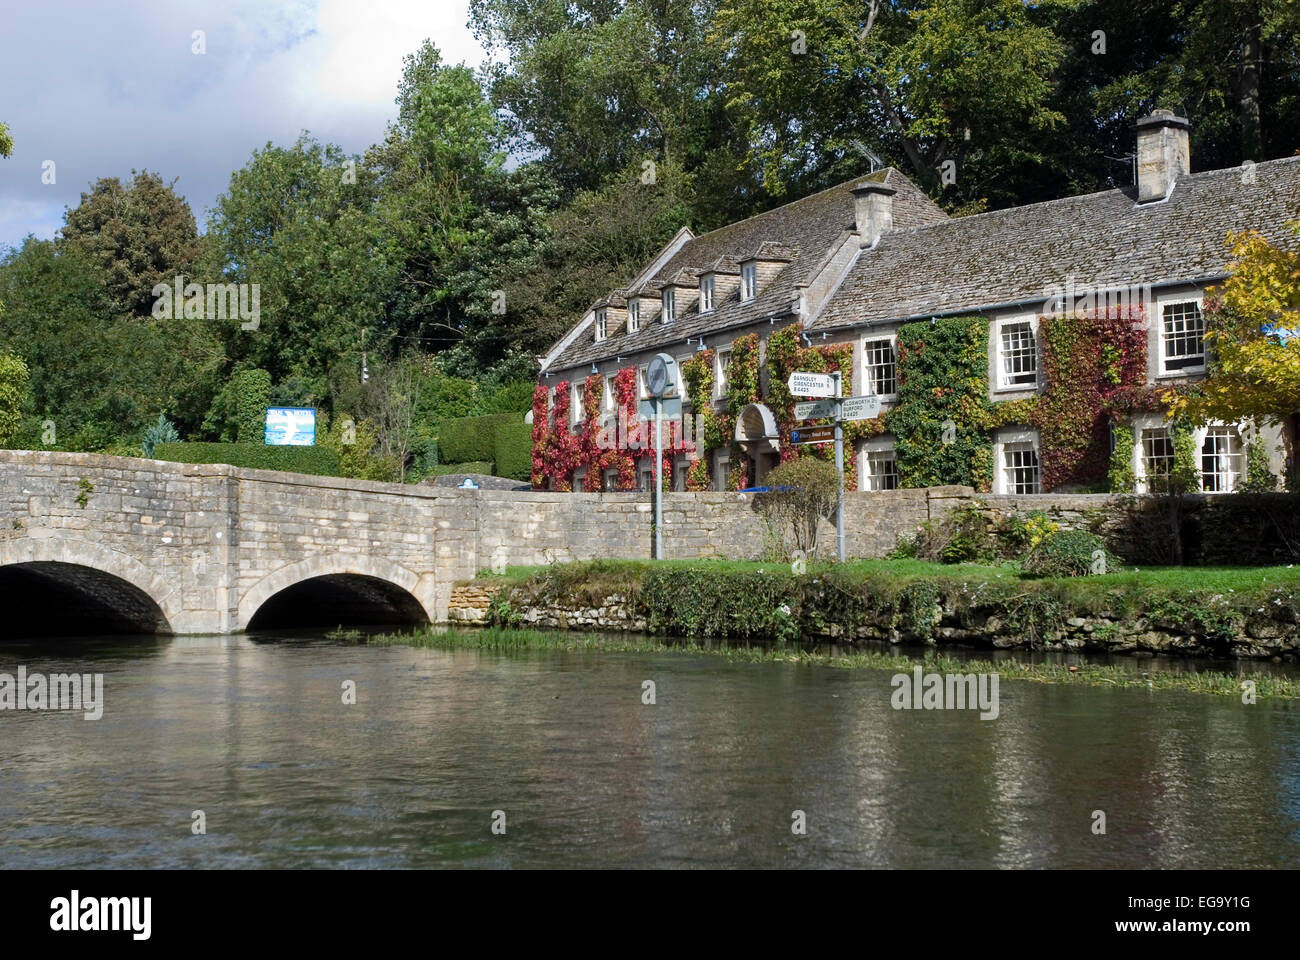 Swan hotel in Bibury, Gloucestershire, Cotswolds, England, Great Britain, Europe Stock Photo